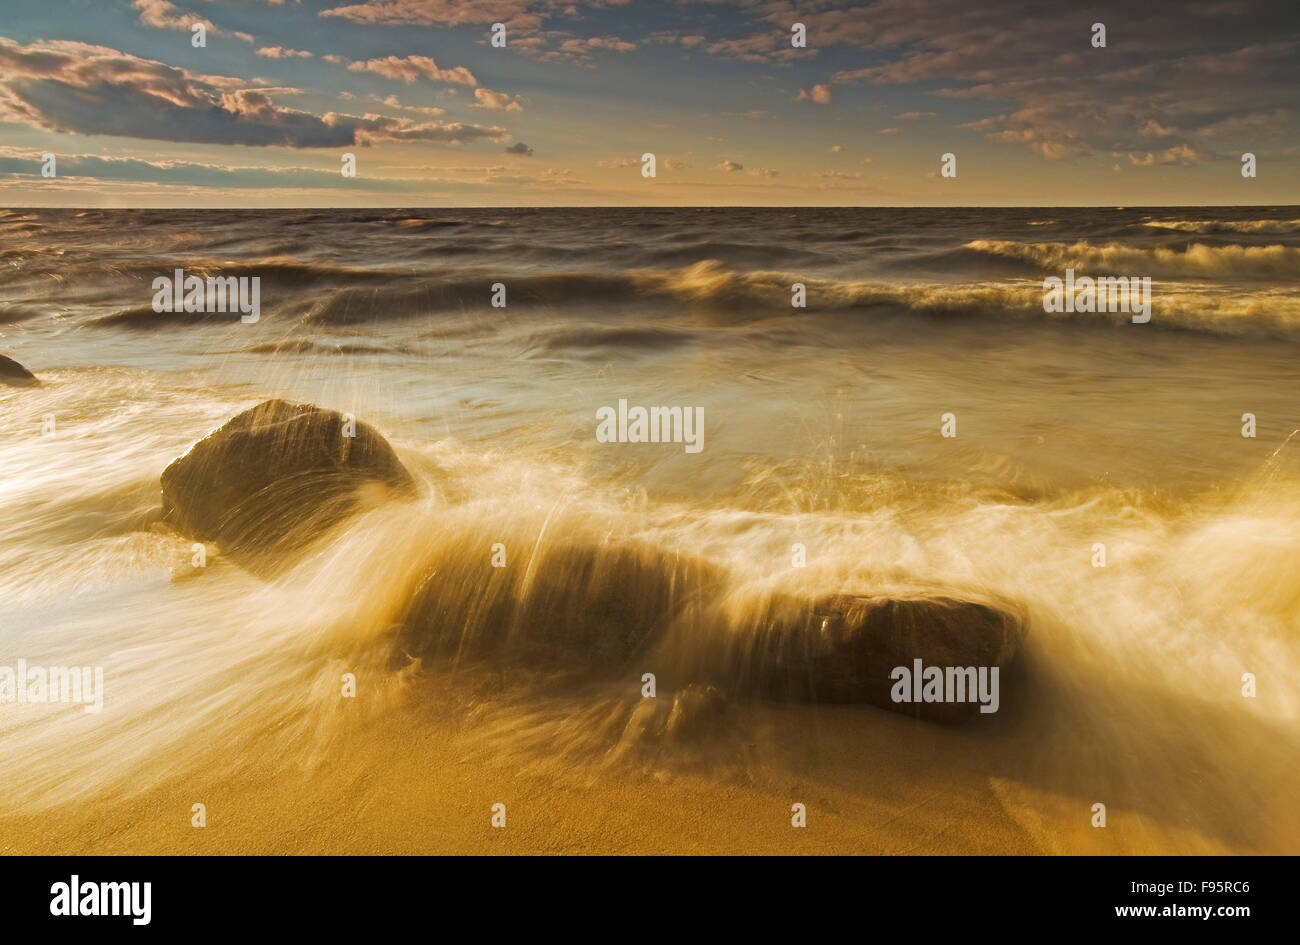 surf during a windy evening, Hillside Beach, Lake Winnipeg, Manitoba, Canada - Stock Image